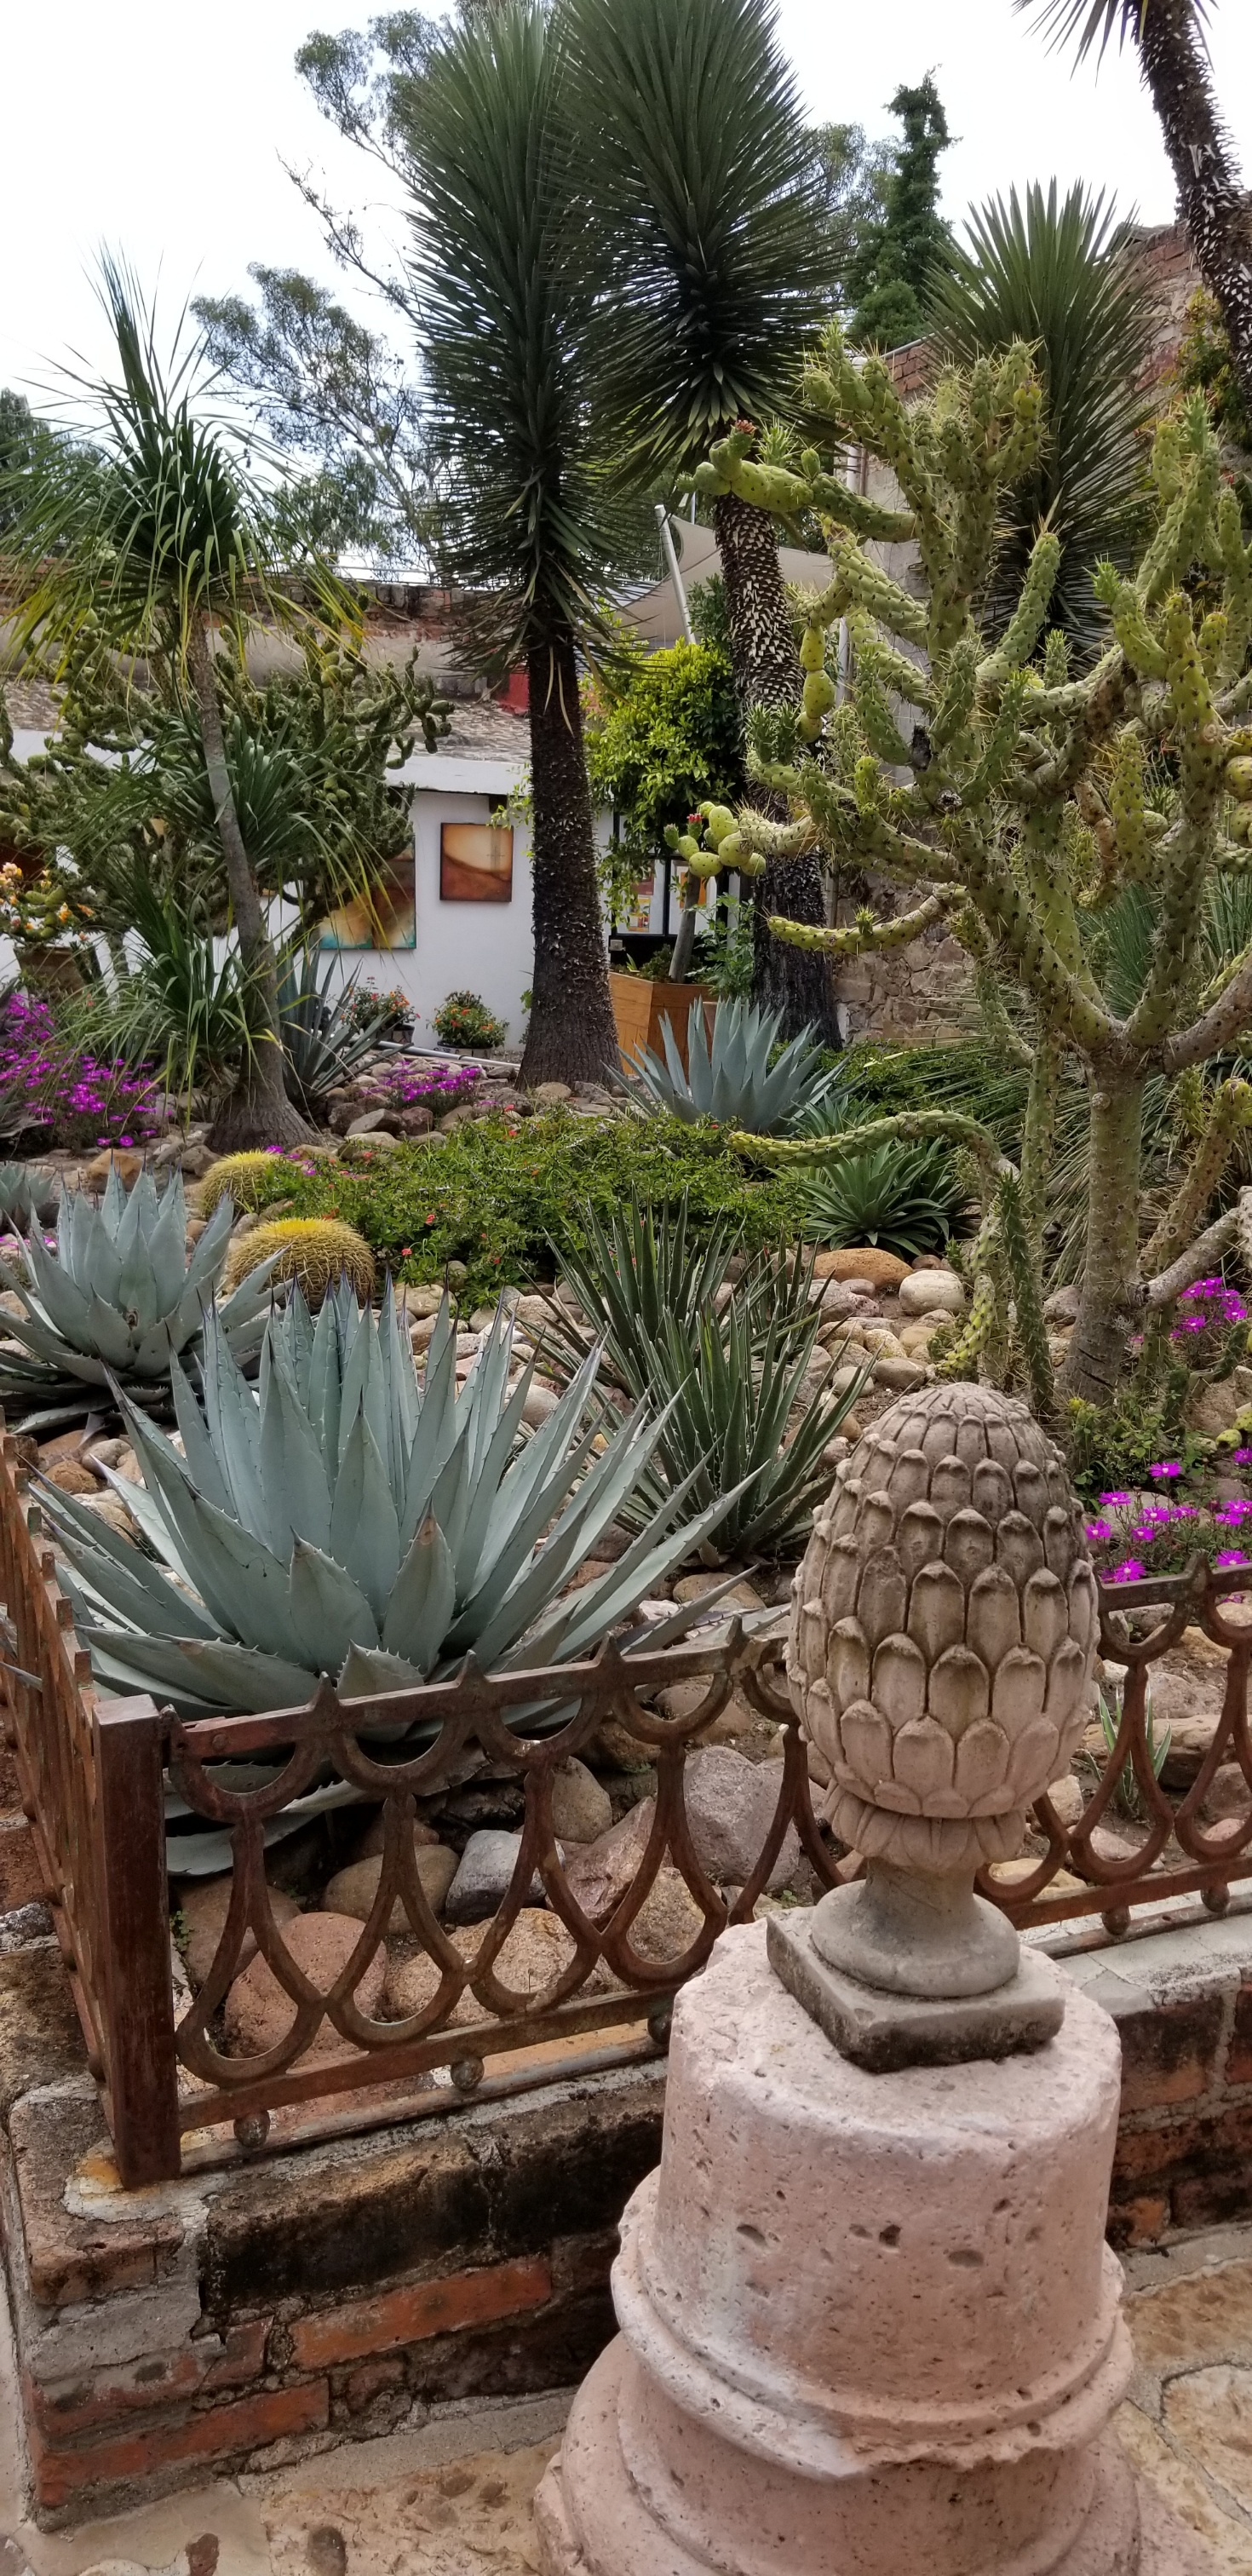 Cactus garden at Fabrica la Aurora in San Miguel de Allende where I will have a large scale installation in March, 2019. Hope to see you there!